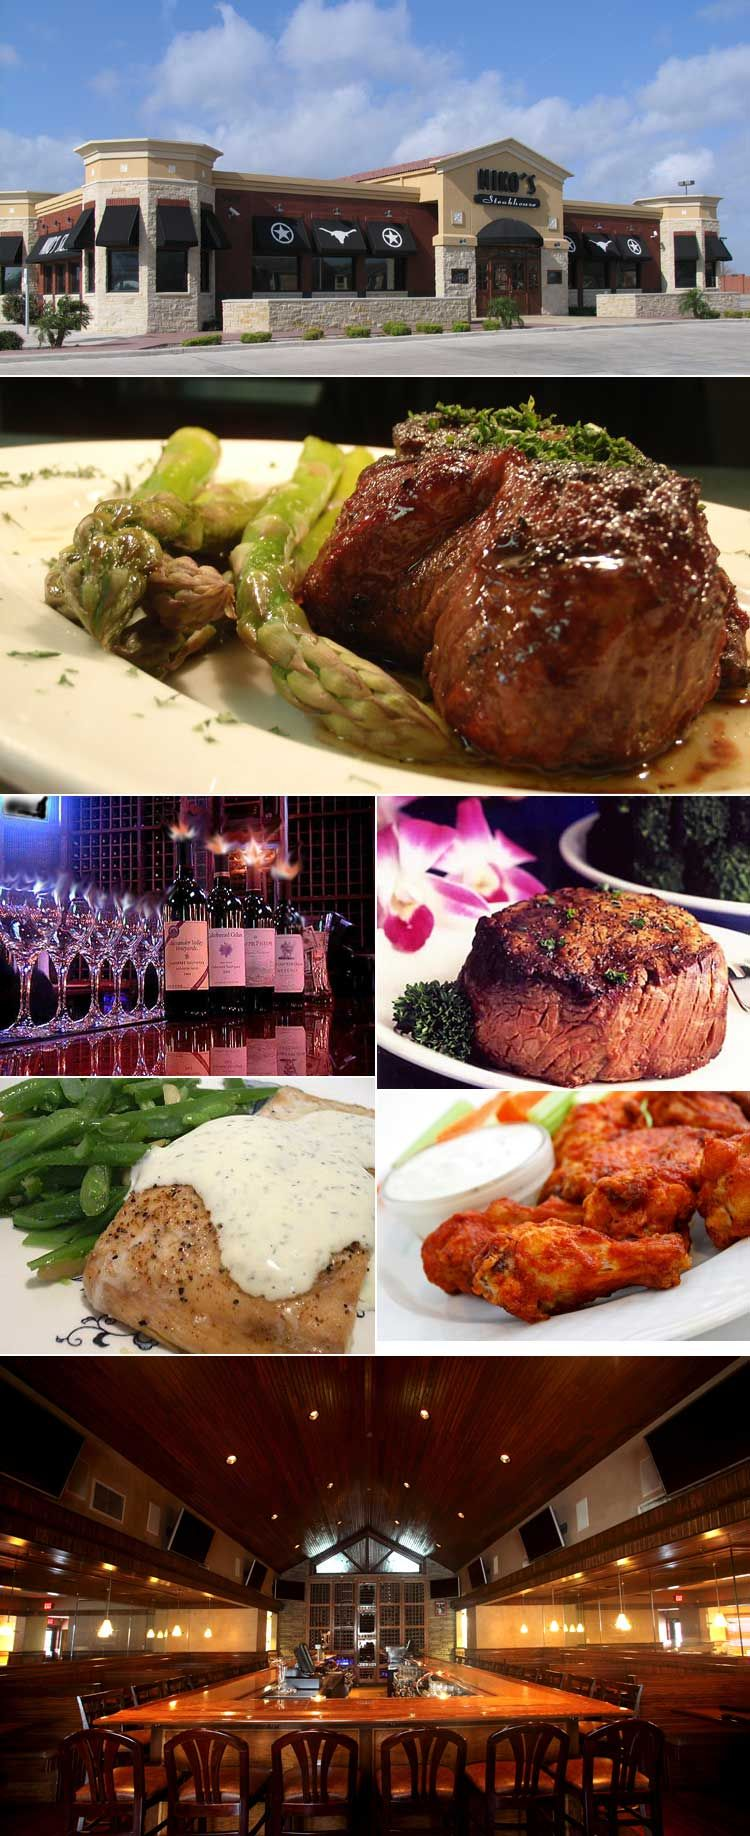 Nikos Steakhouse Restaurant In Corpus Christi Texas